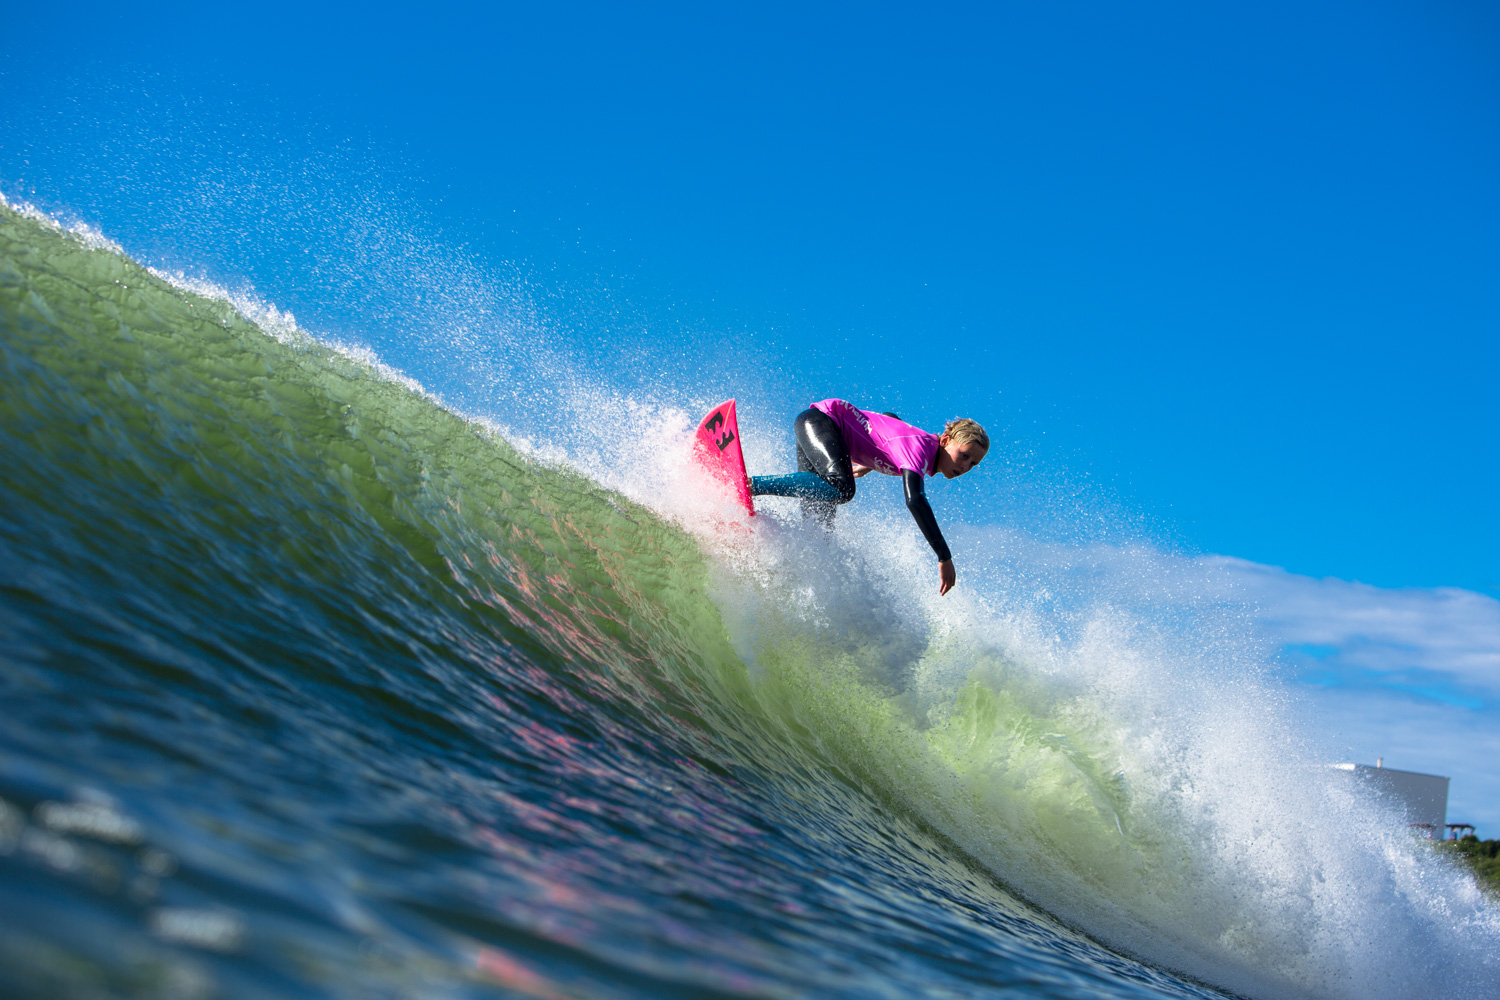 Incredible surfing action from the final day of the Hurley SA Junior Champs